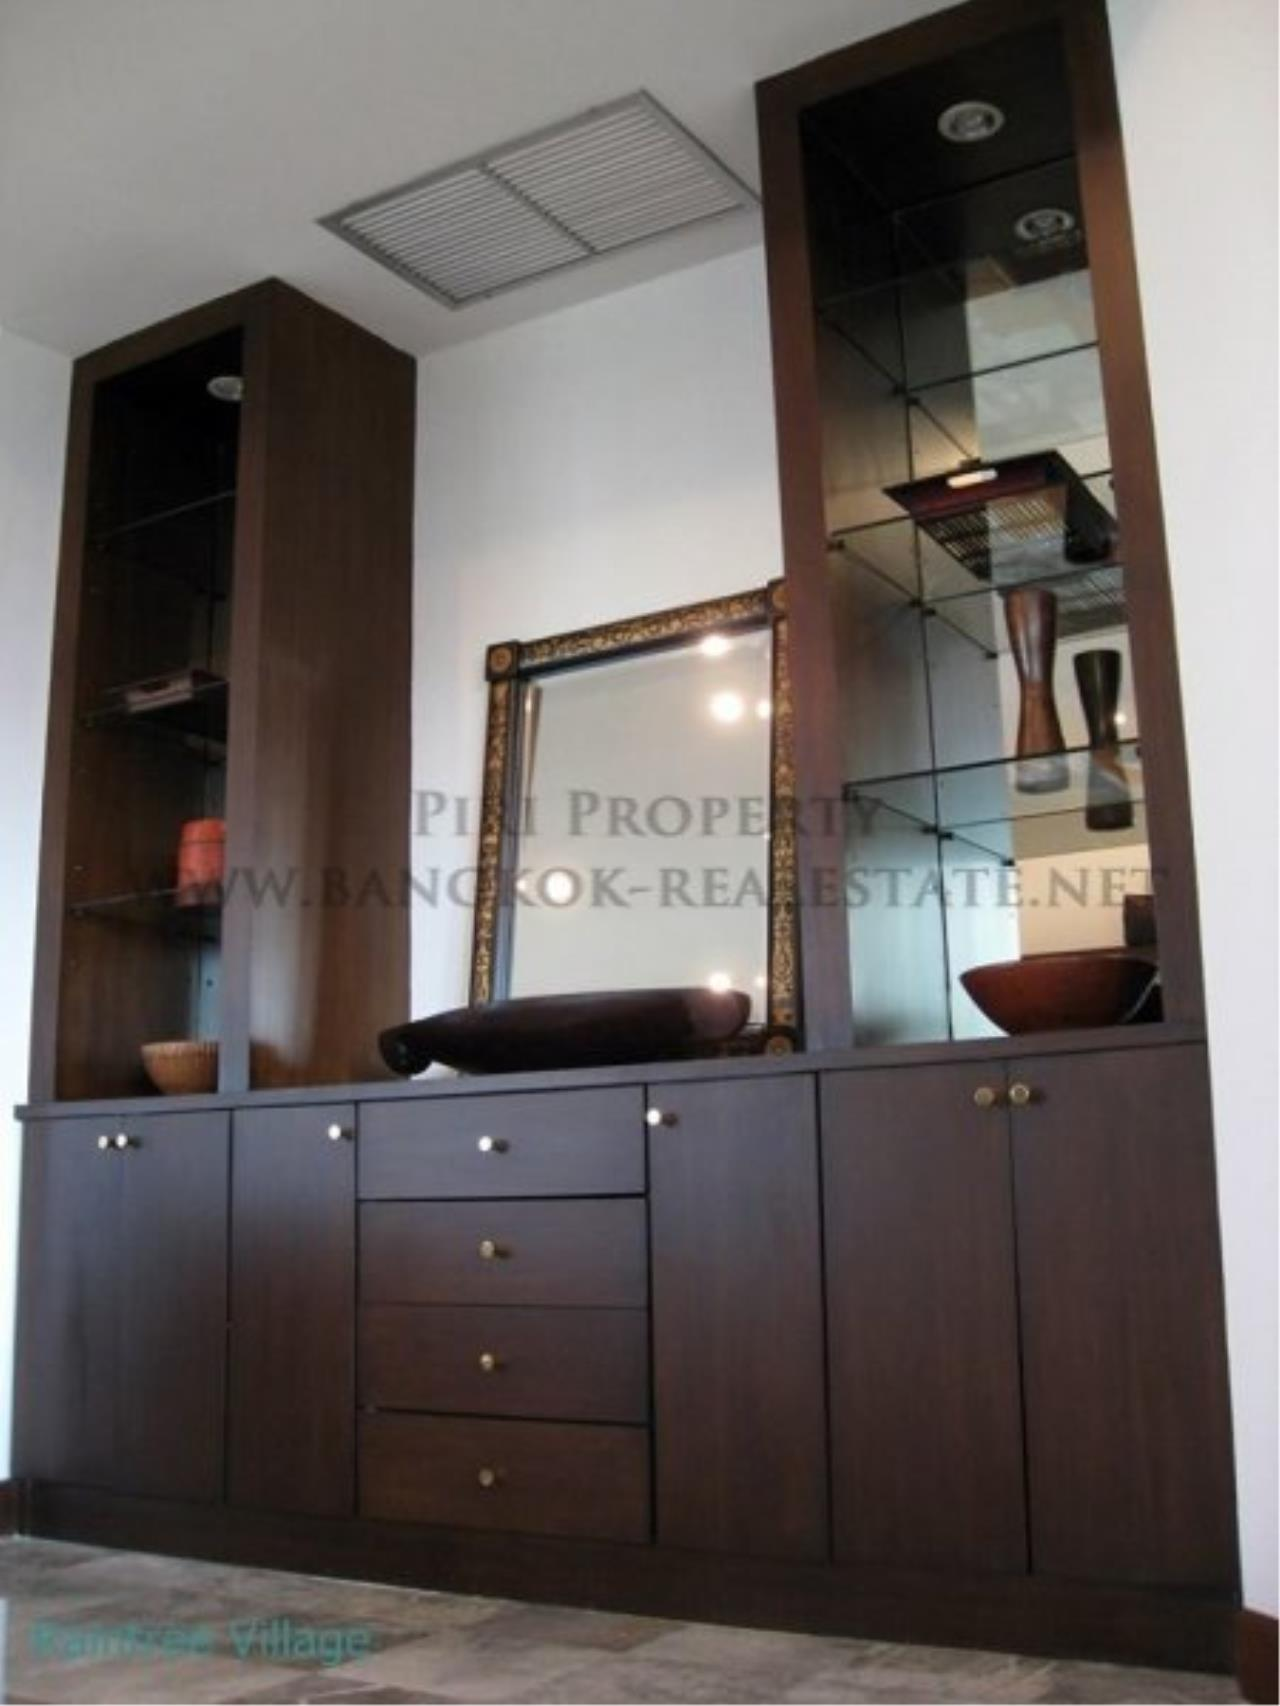 Piri Property Agency's Spacious Family Apartment in Phrom Phong for Rent - 3 Bed 16